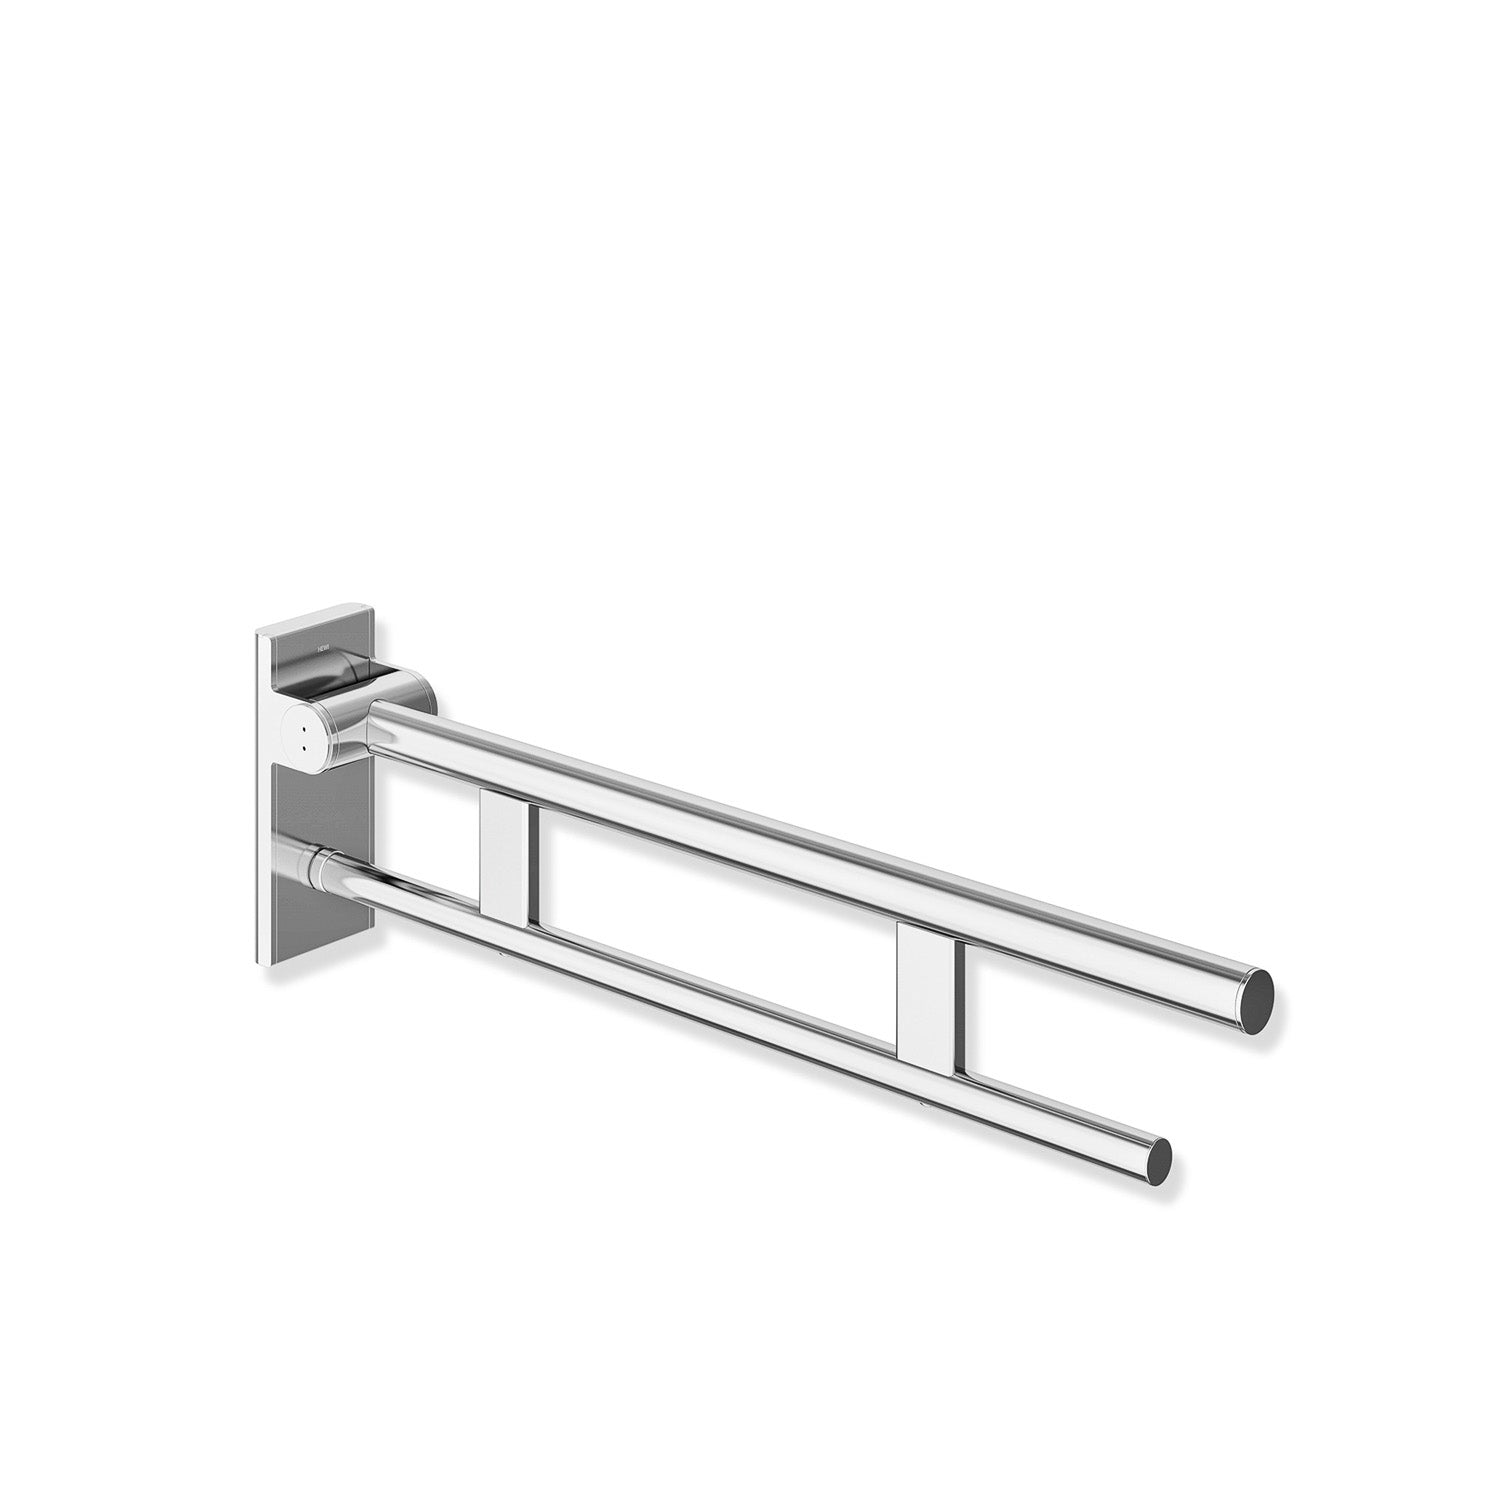 850mm Freestyle Hinged Grab Rail with a chrome finish on a white background